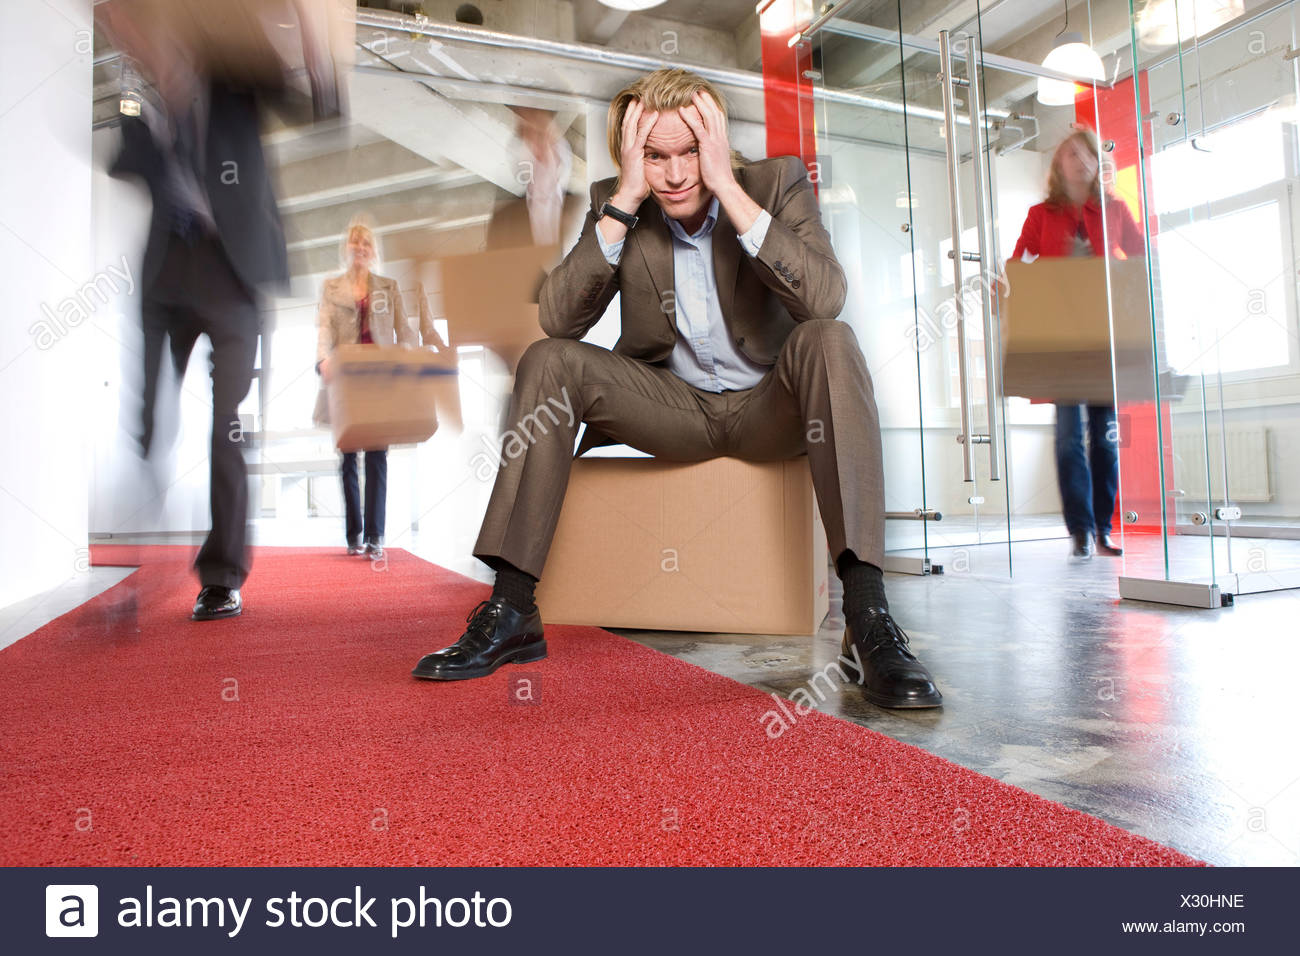 office removal - Stock Image